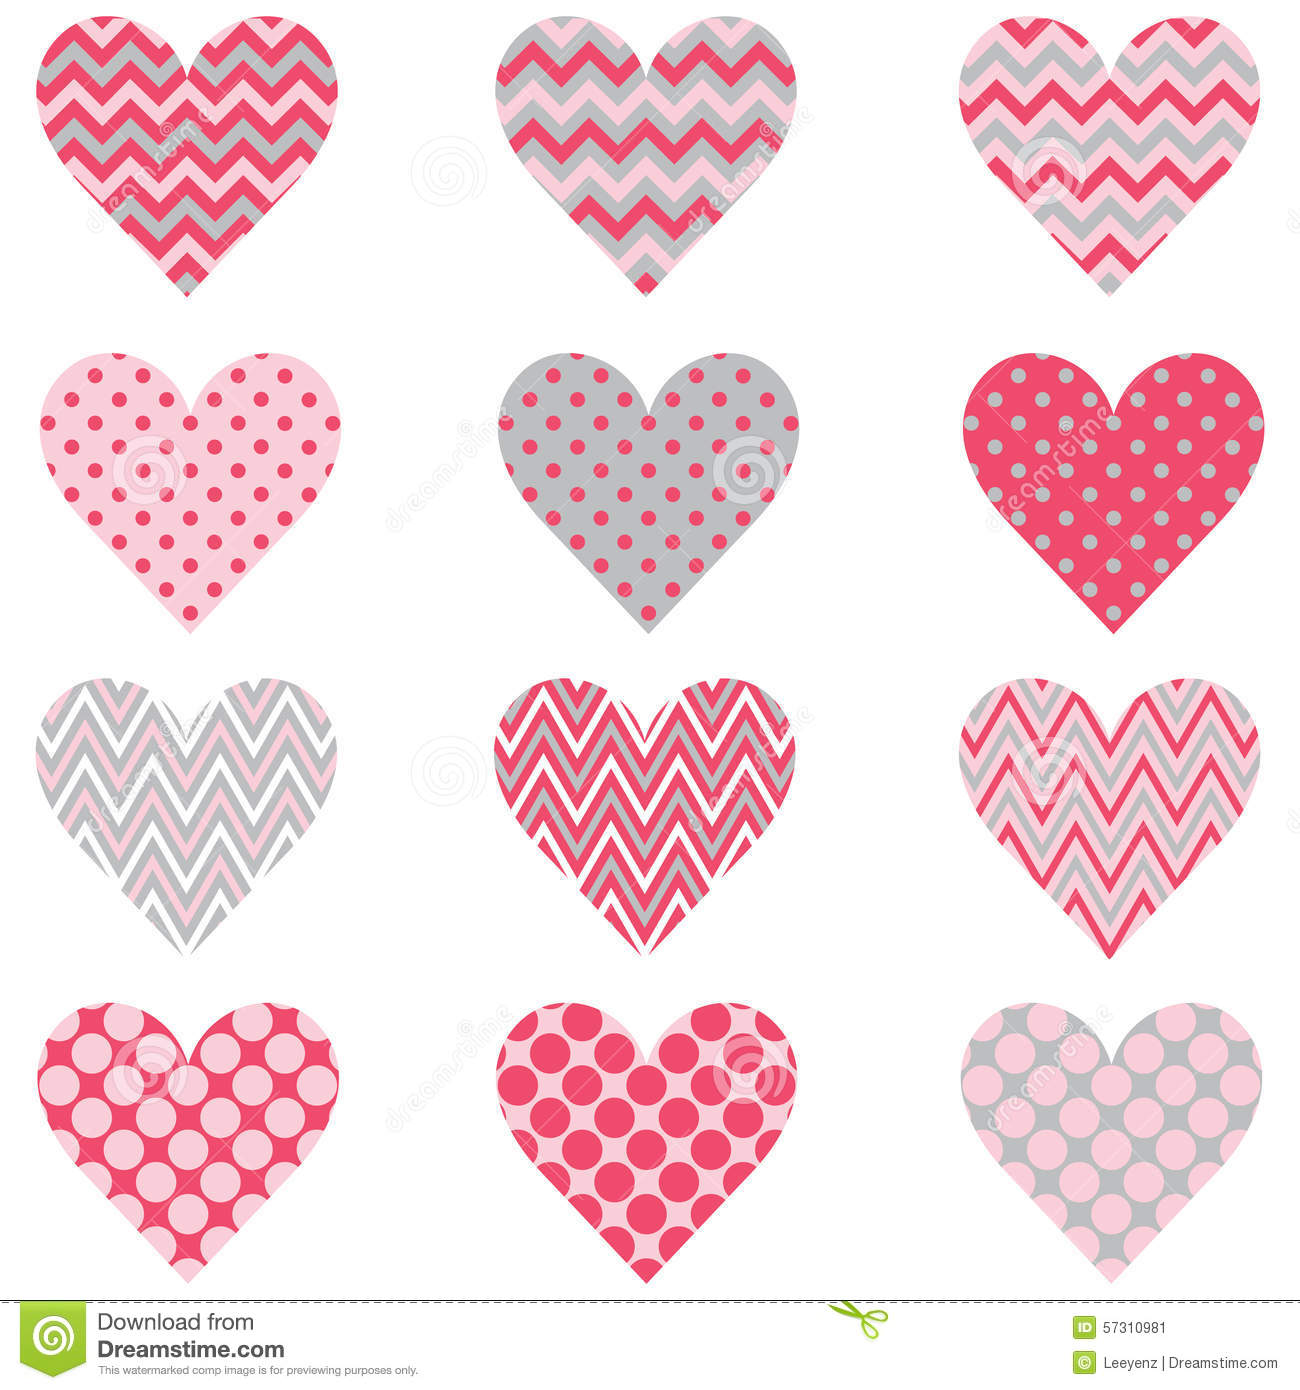 Polca rosada Dot Heart Shape Pattern de Chevron